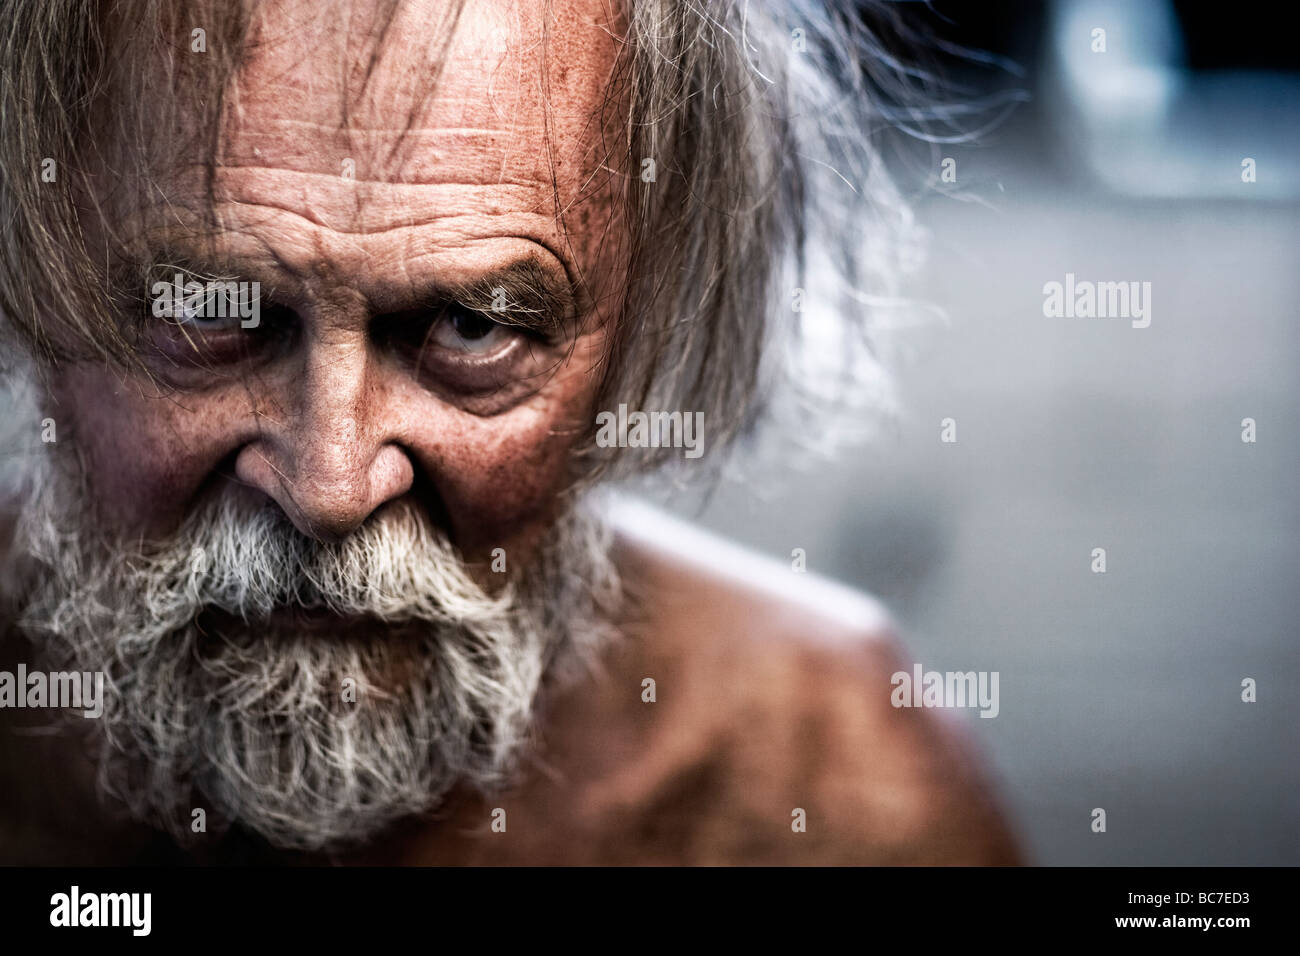 king lear 3 essay The fool plays three major roles one of these roles is that of an 'inner- conscience' of lear the fool provides basic wisdom and reasoning for the king  at much.